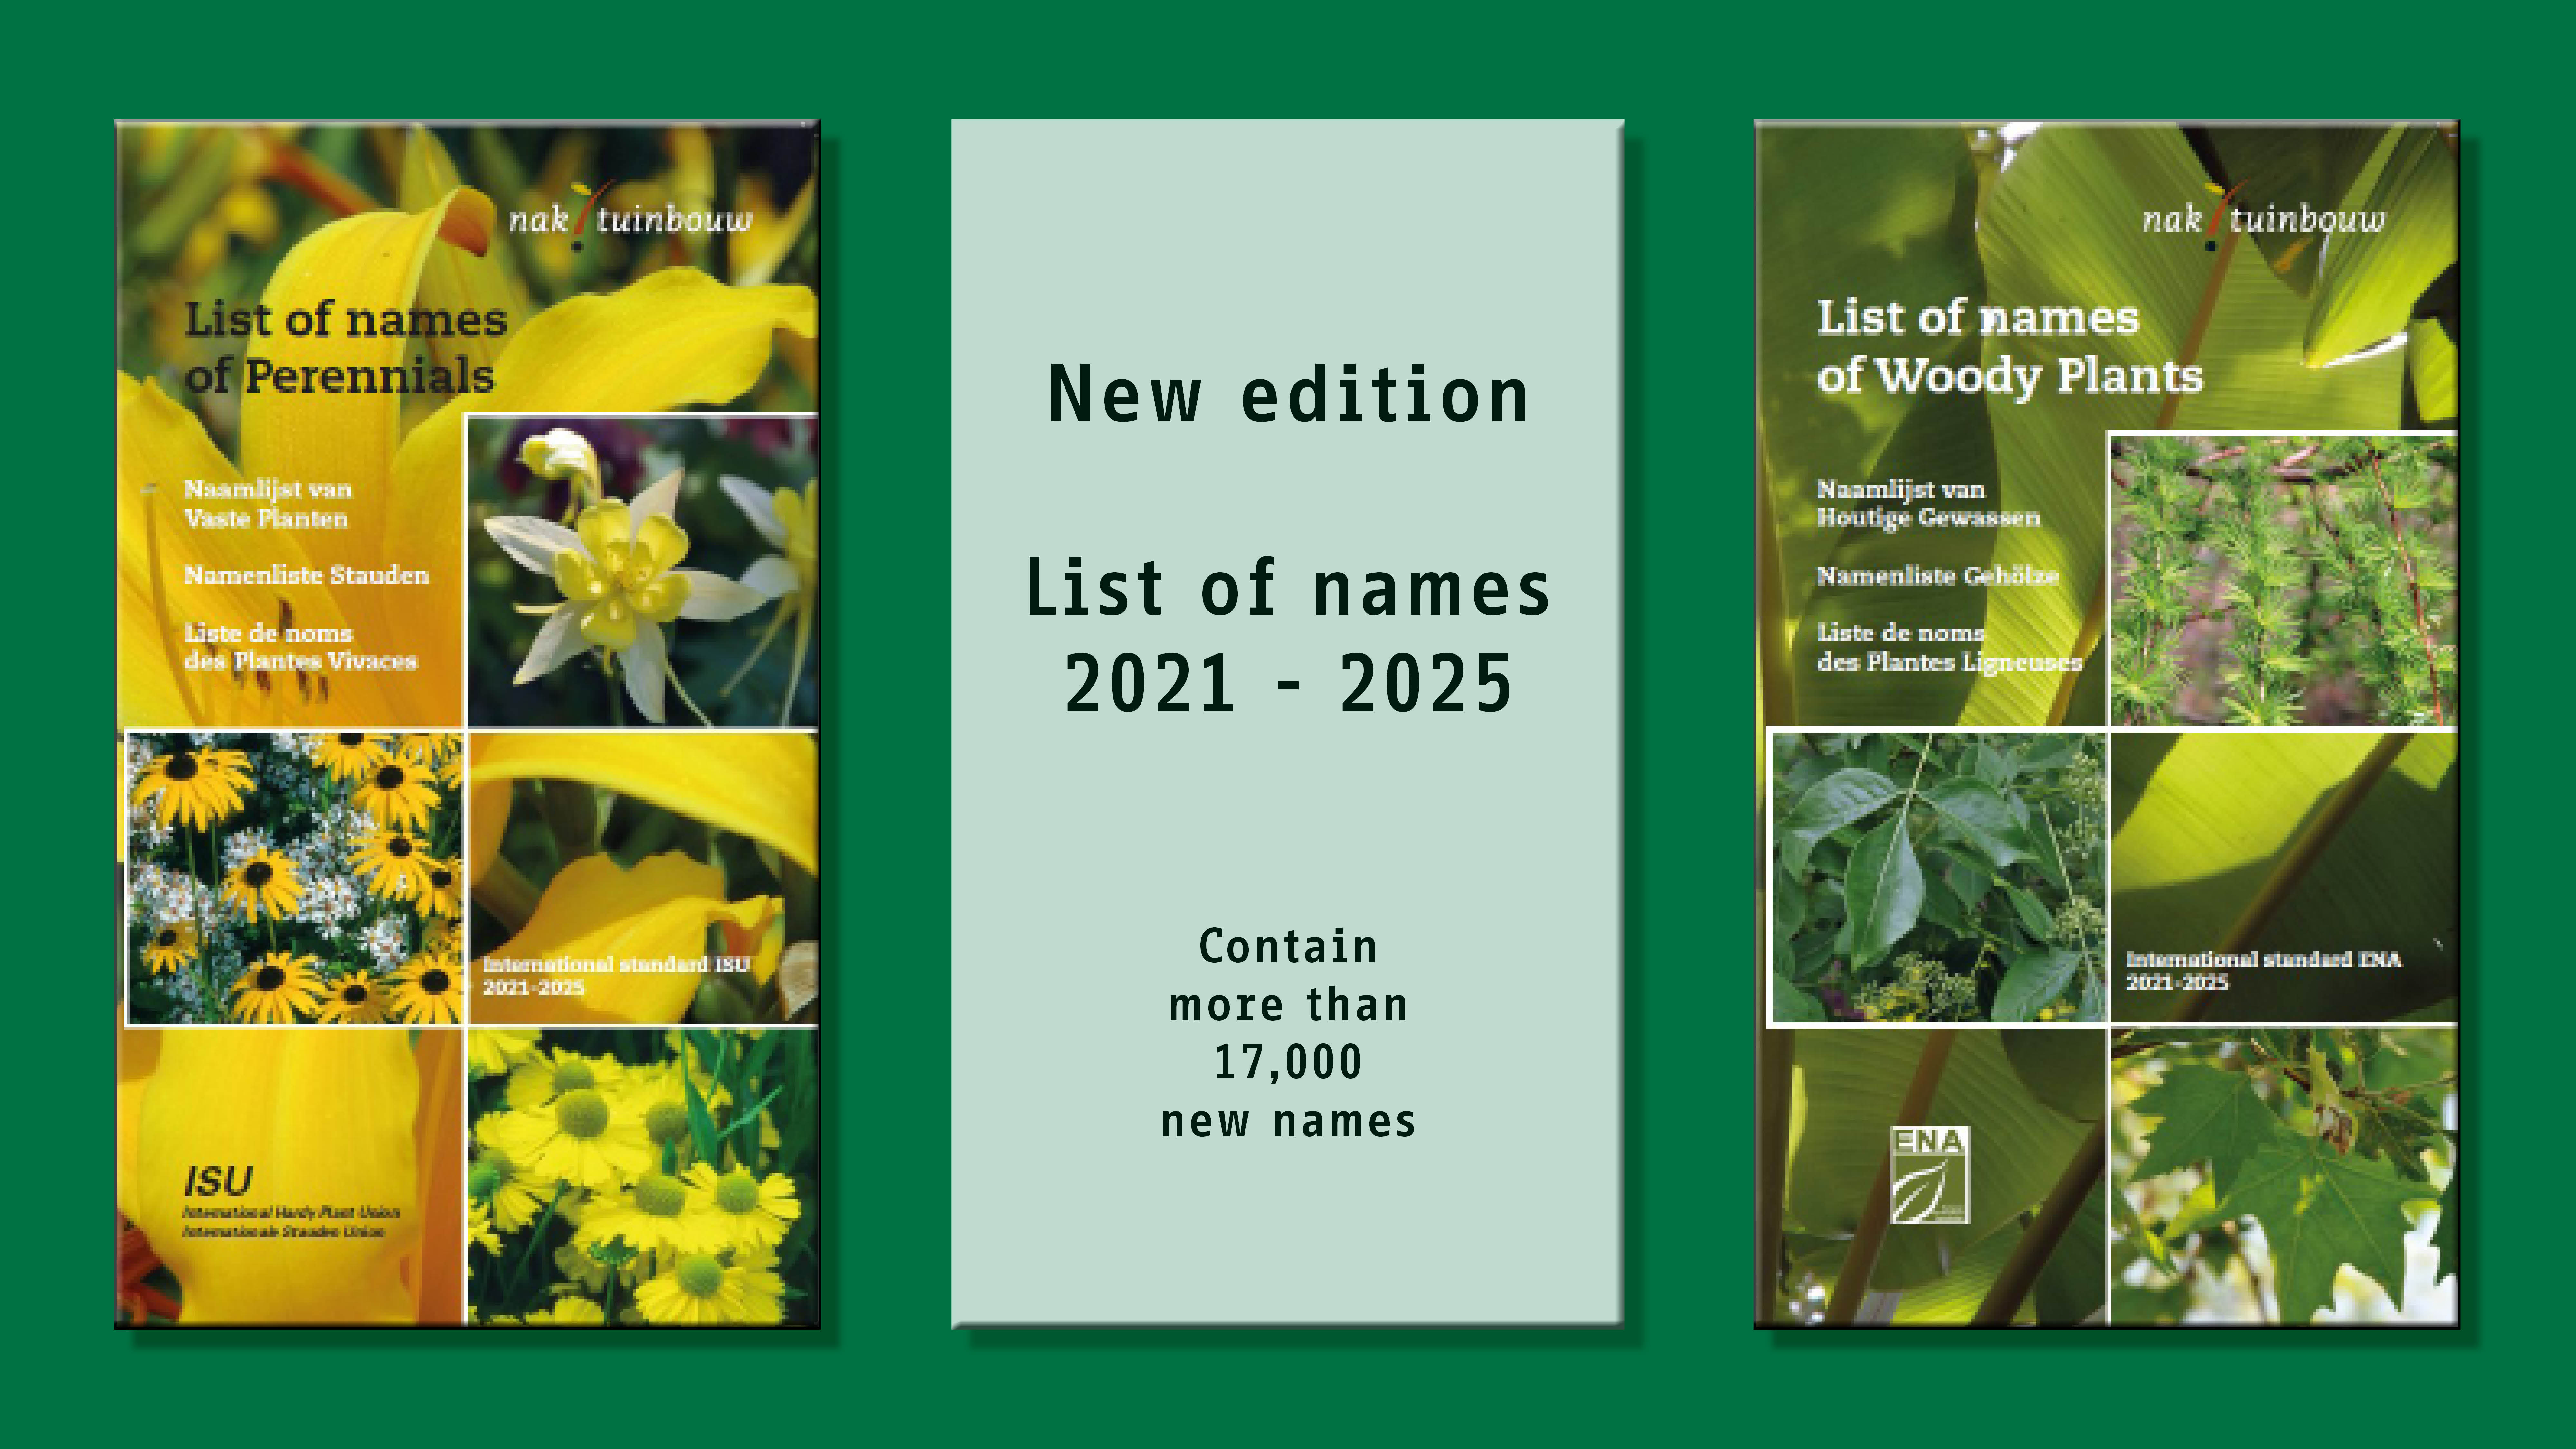 New editions List of Names woody plants and perennials 2021-2025